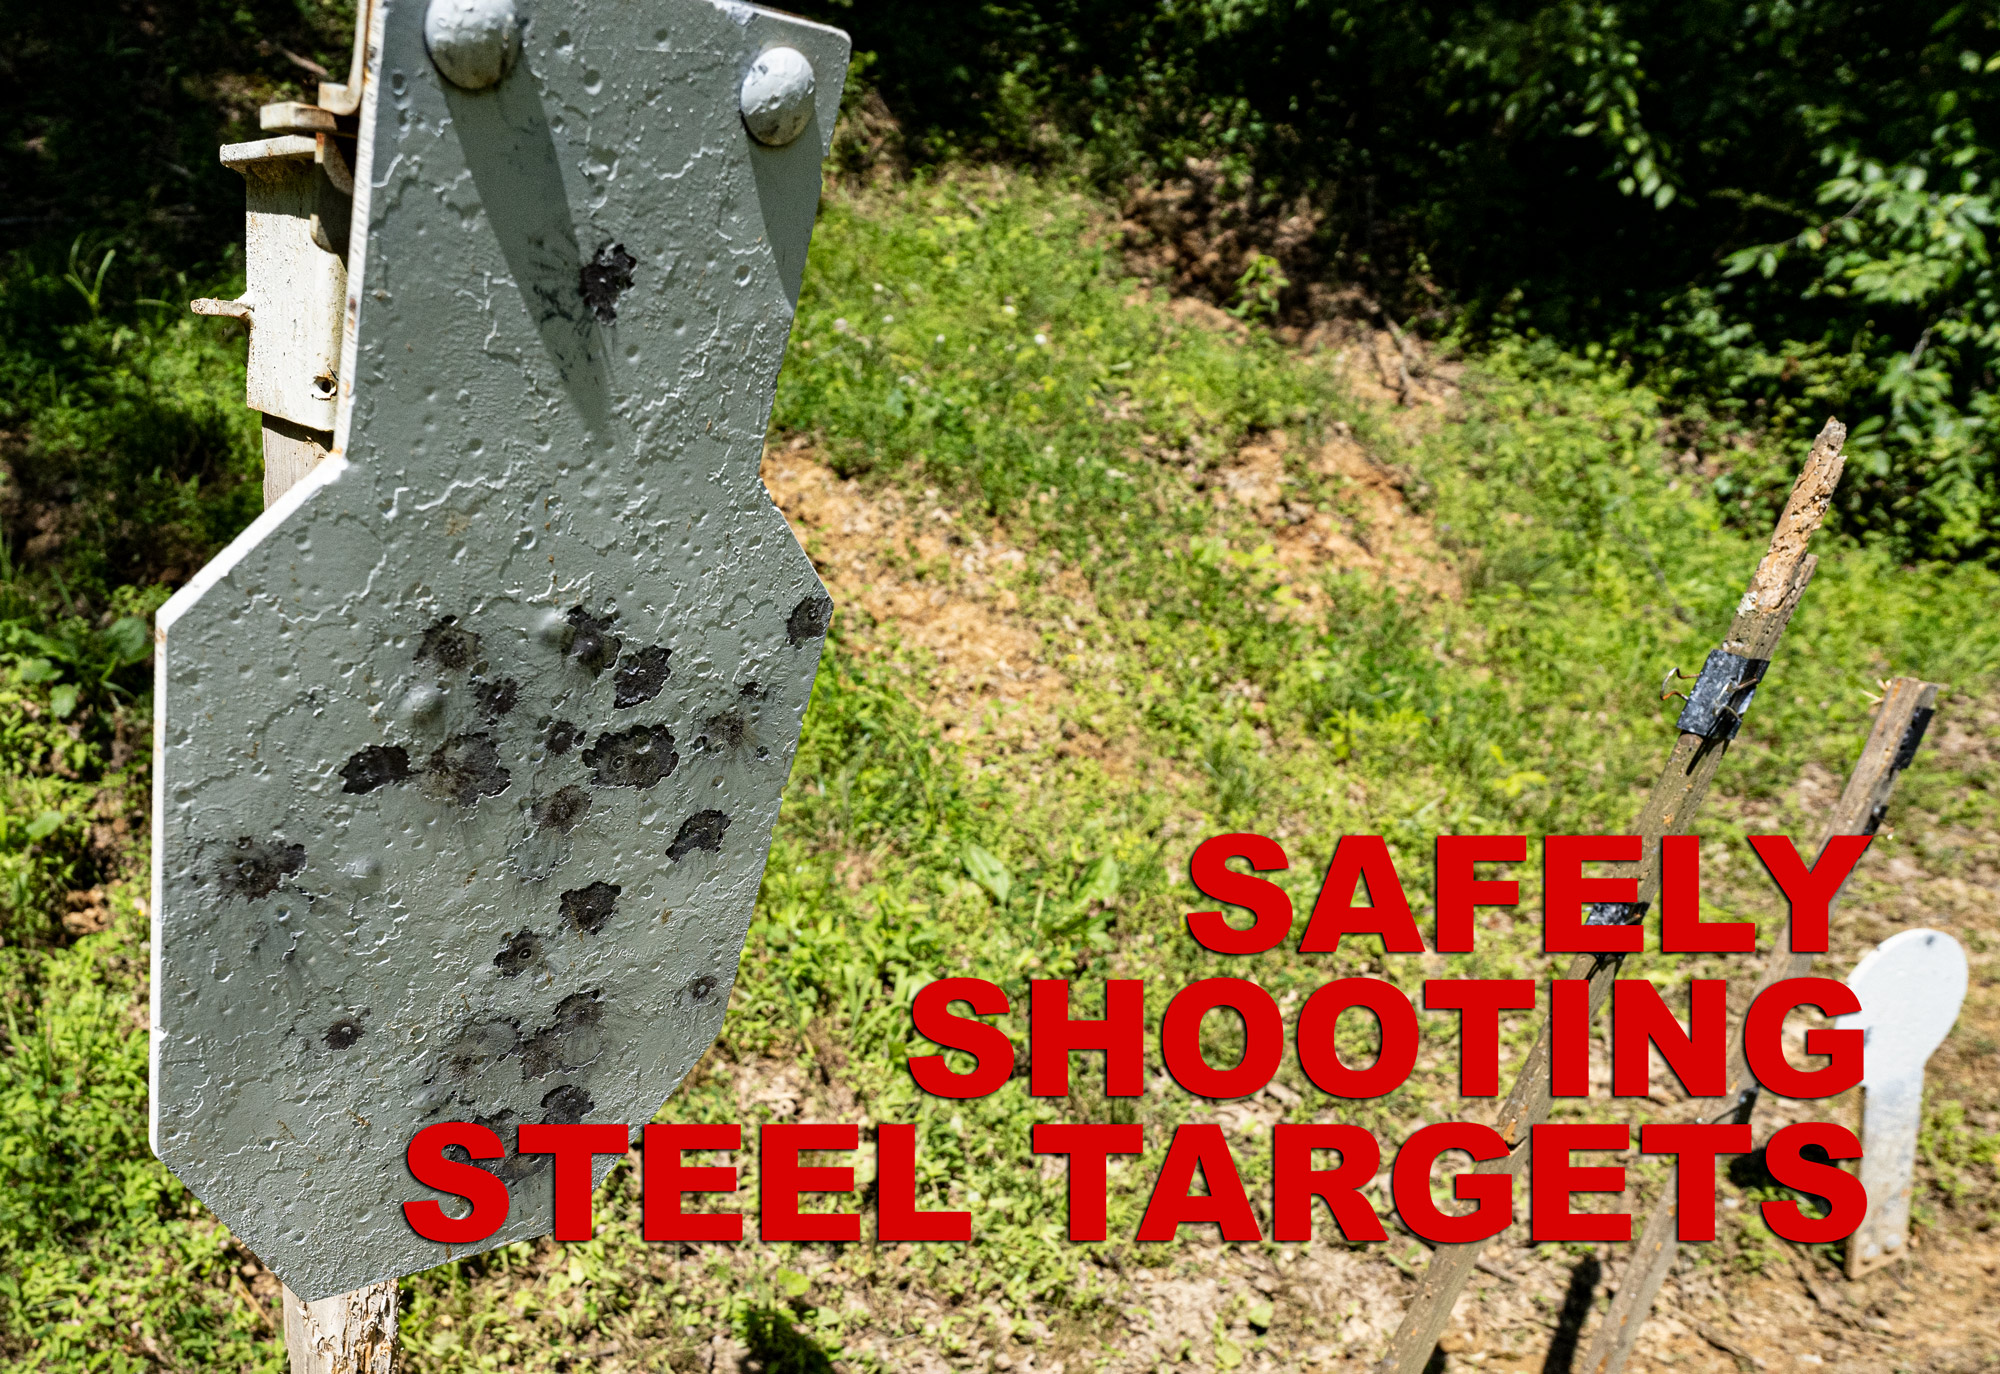 Shooting steel targets safely at the range